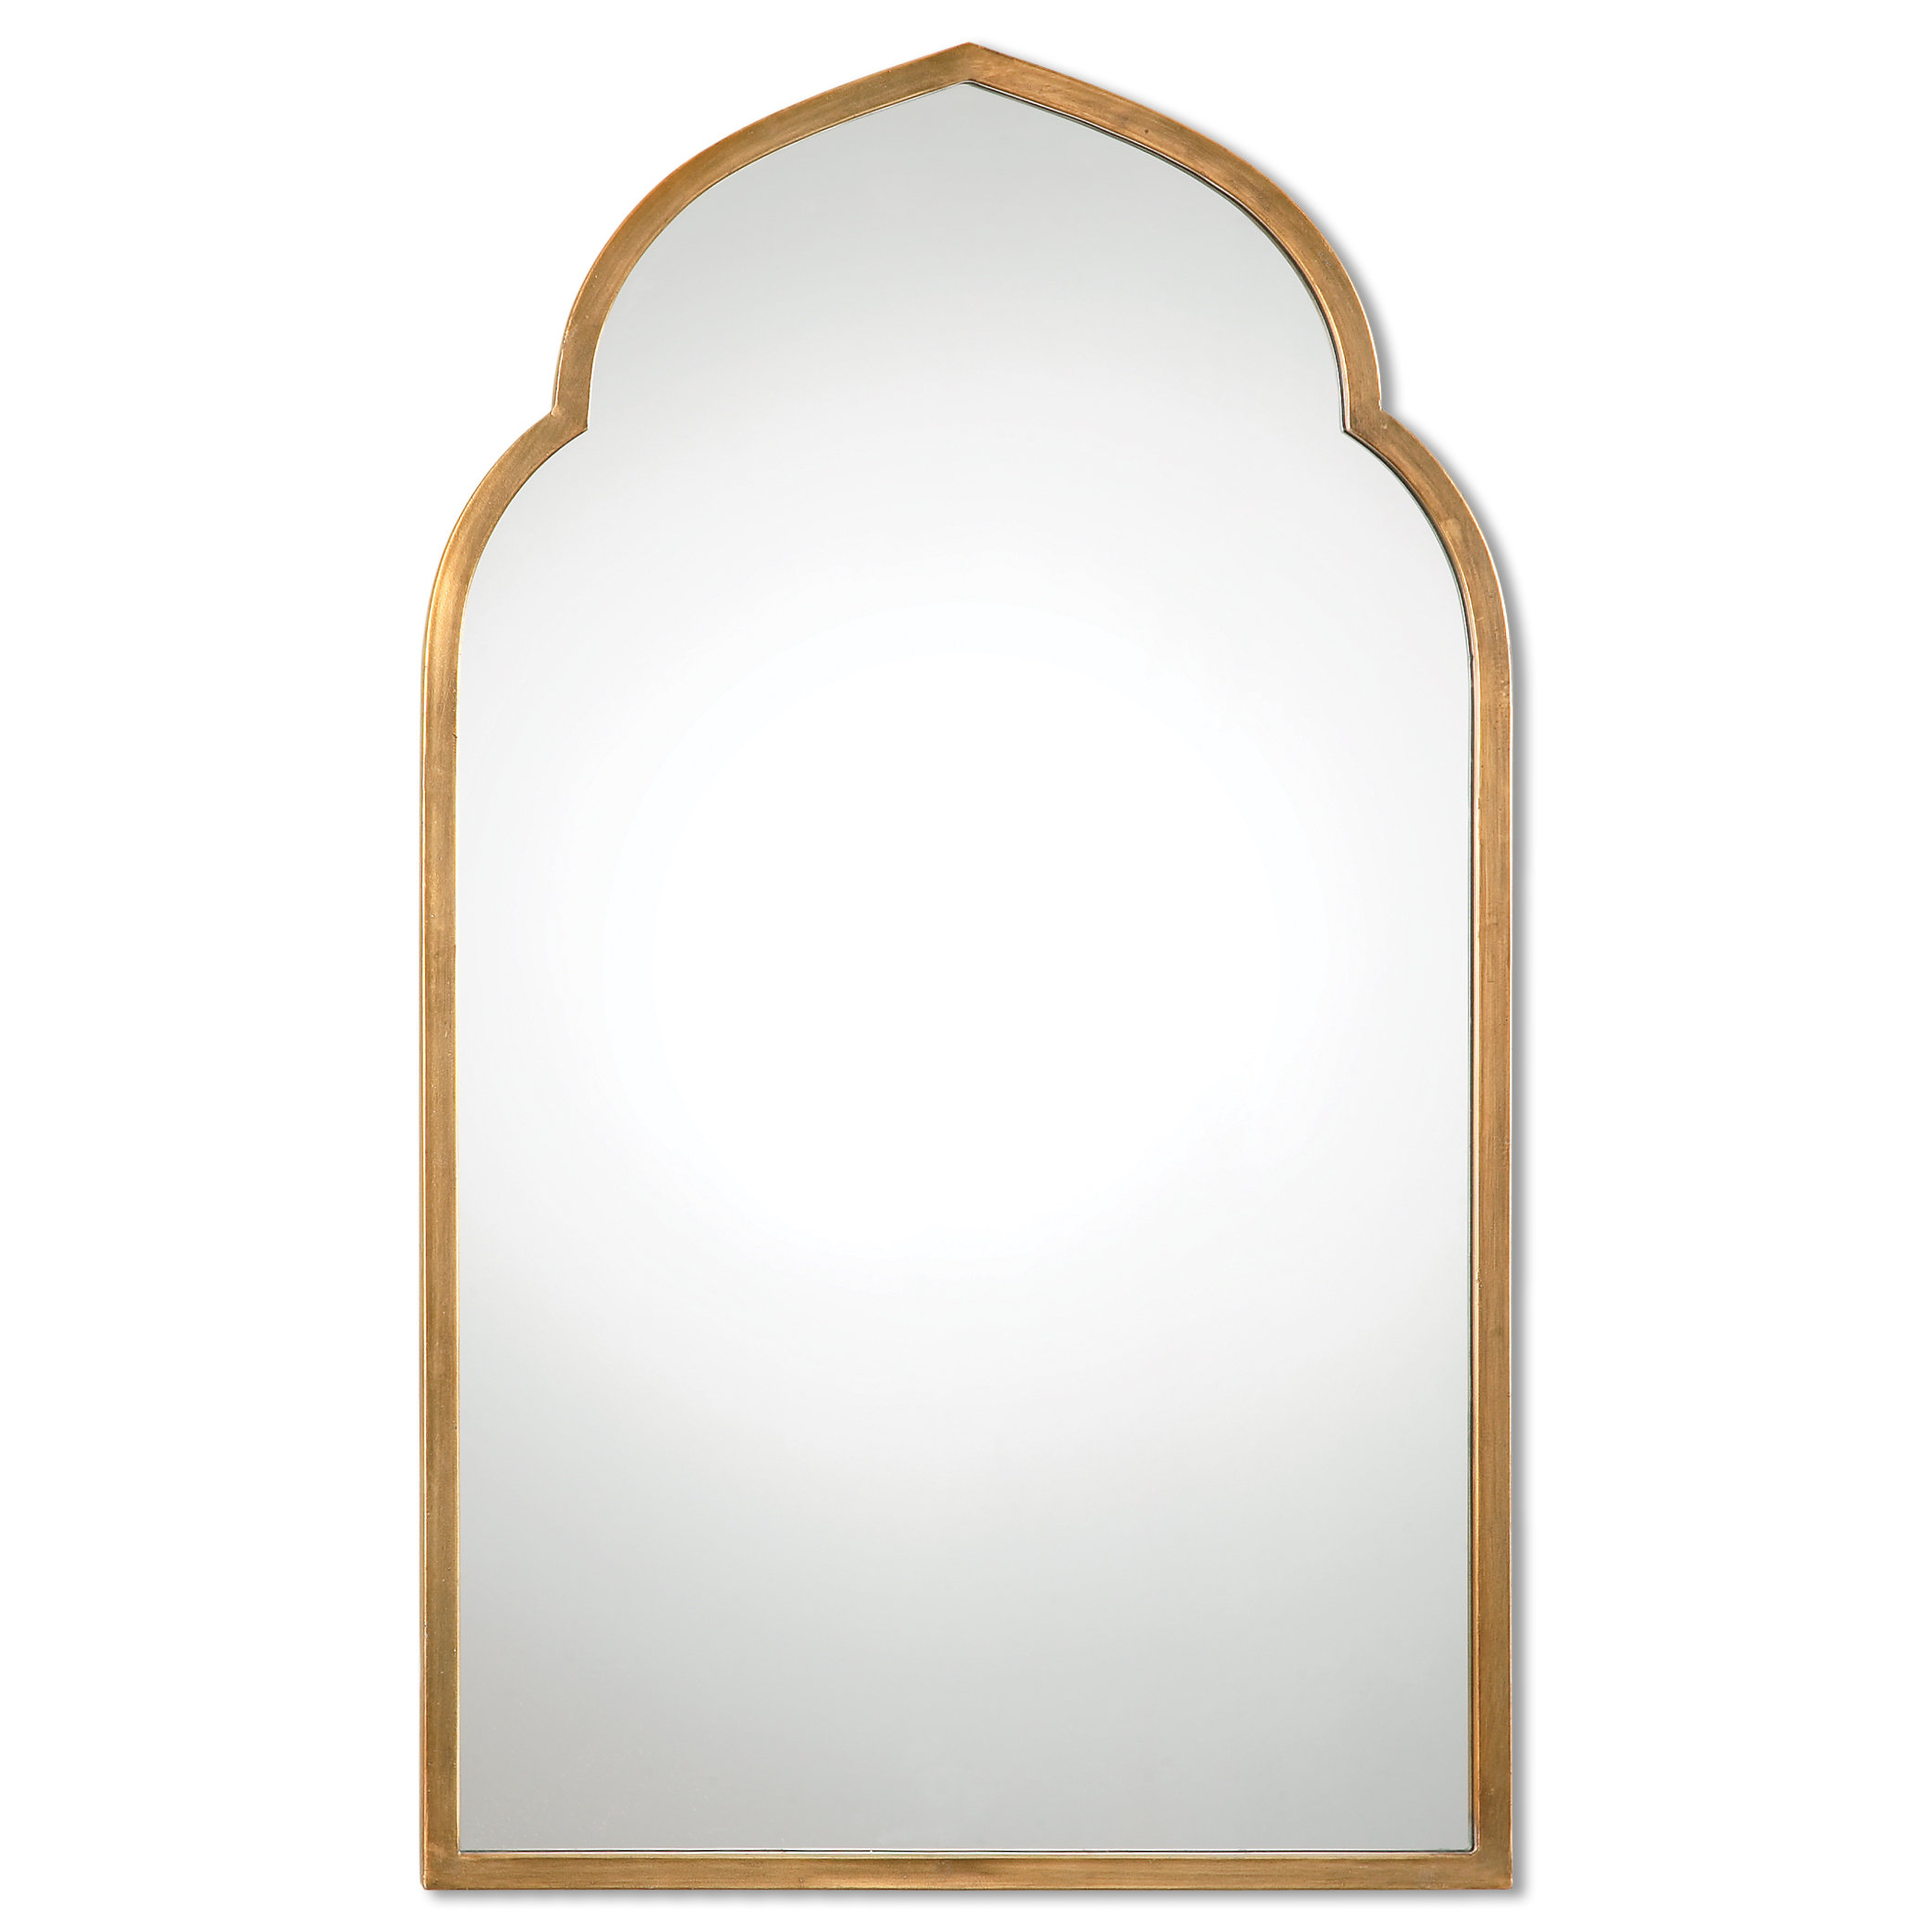 Gold Arch Wall Mirror Inside Most Current Moseley Accent Mirrors (View 18 of 20)